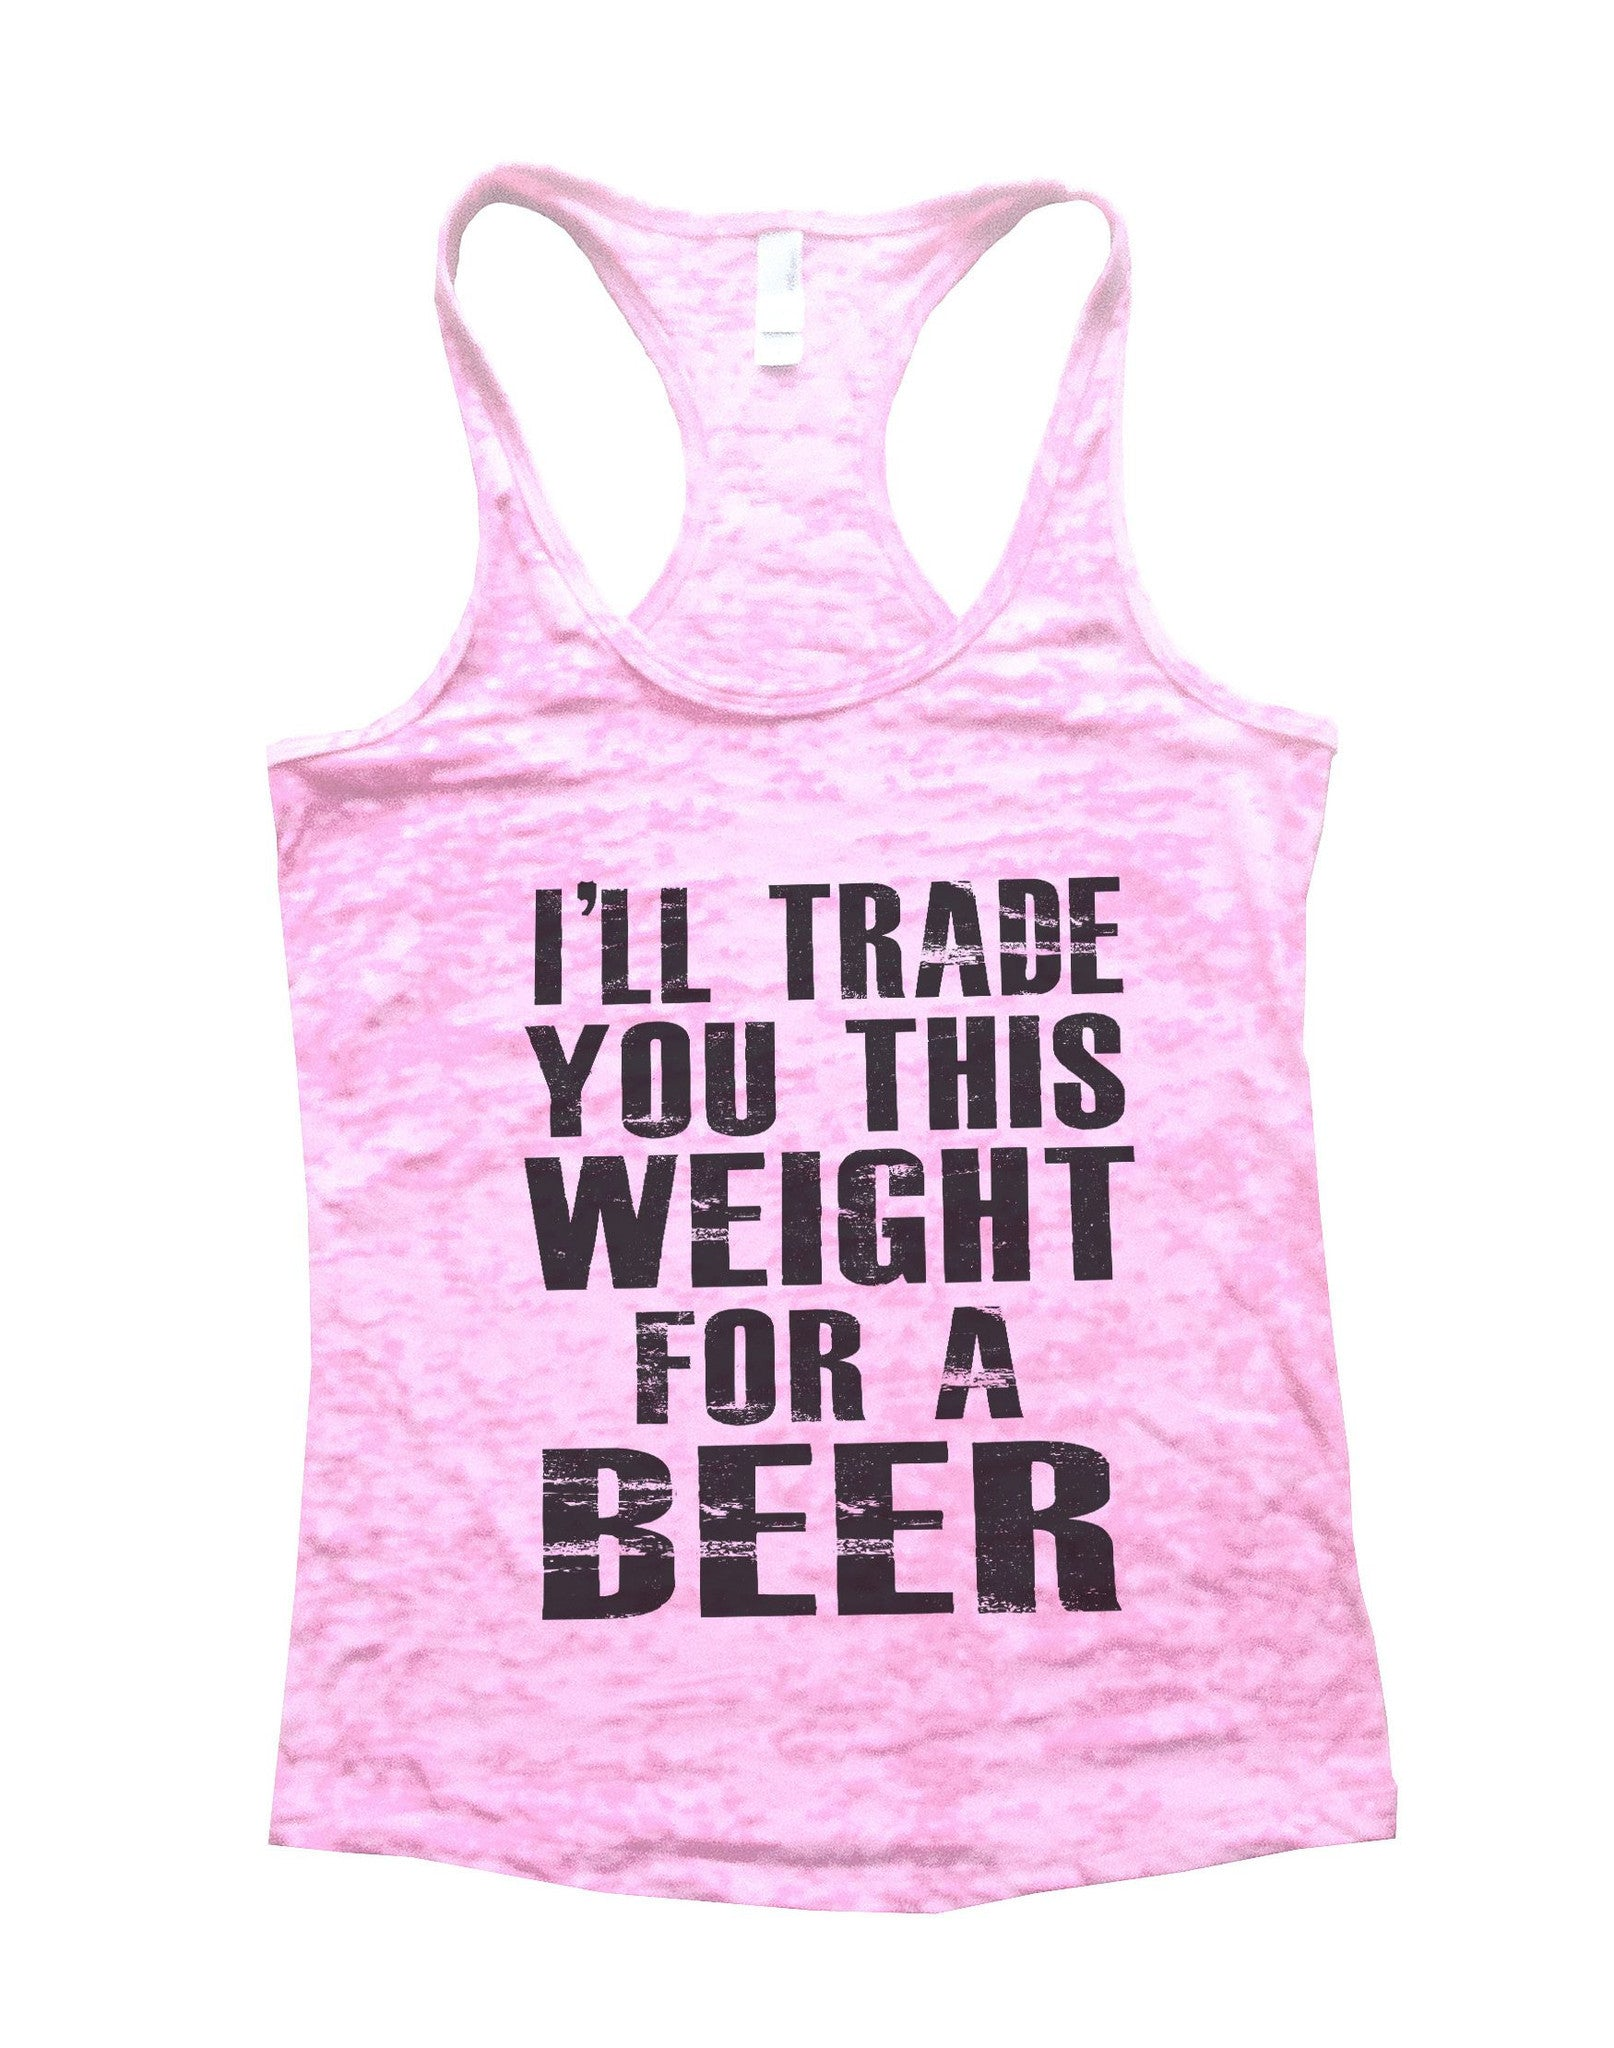 I'll Trade You This Weight For A Beer Burnout Tank Top By BurnoutTankTops.com - 628 - Funny Shirts Tank Tops Burnouts and Triblends  - 3